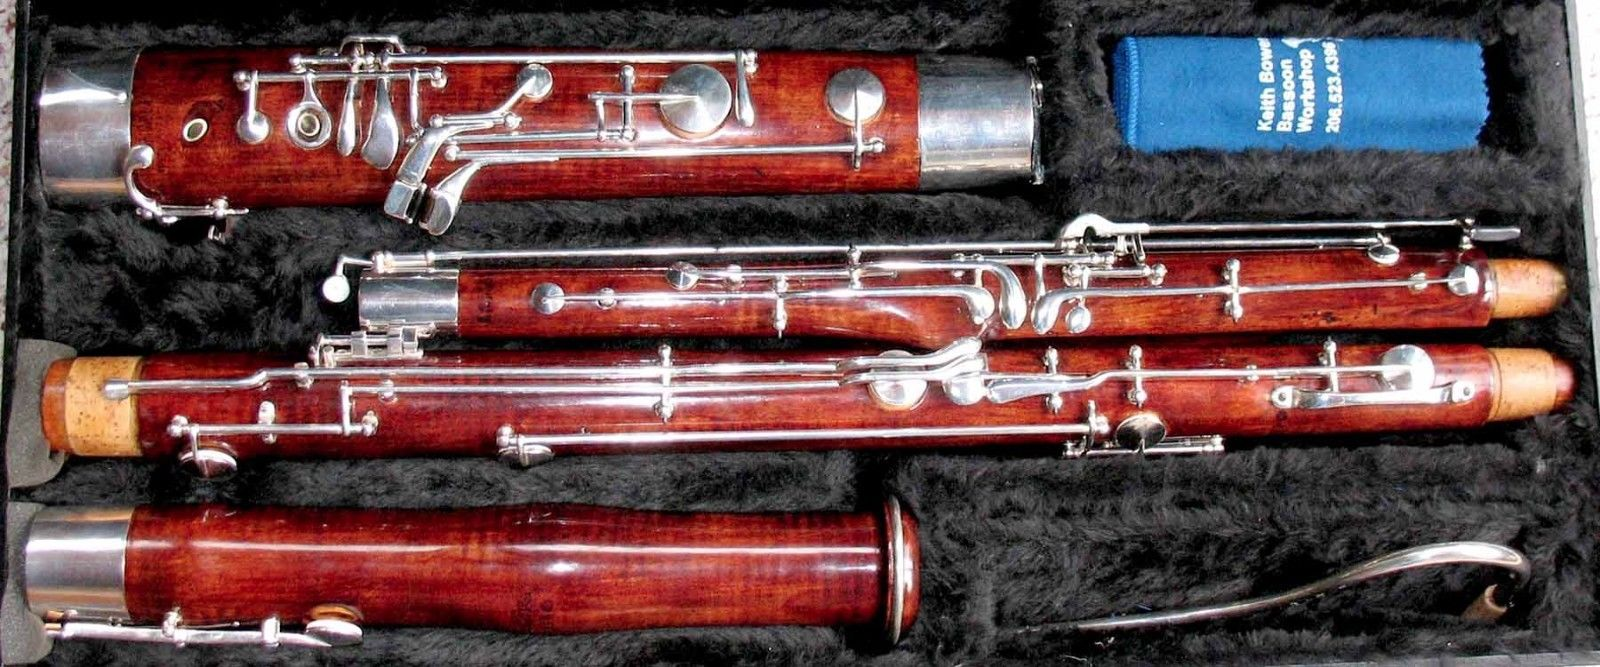 Heckel bassoon, beautiful sound and intonation